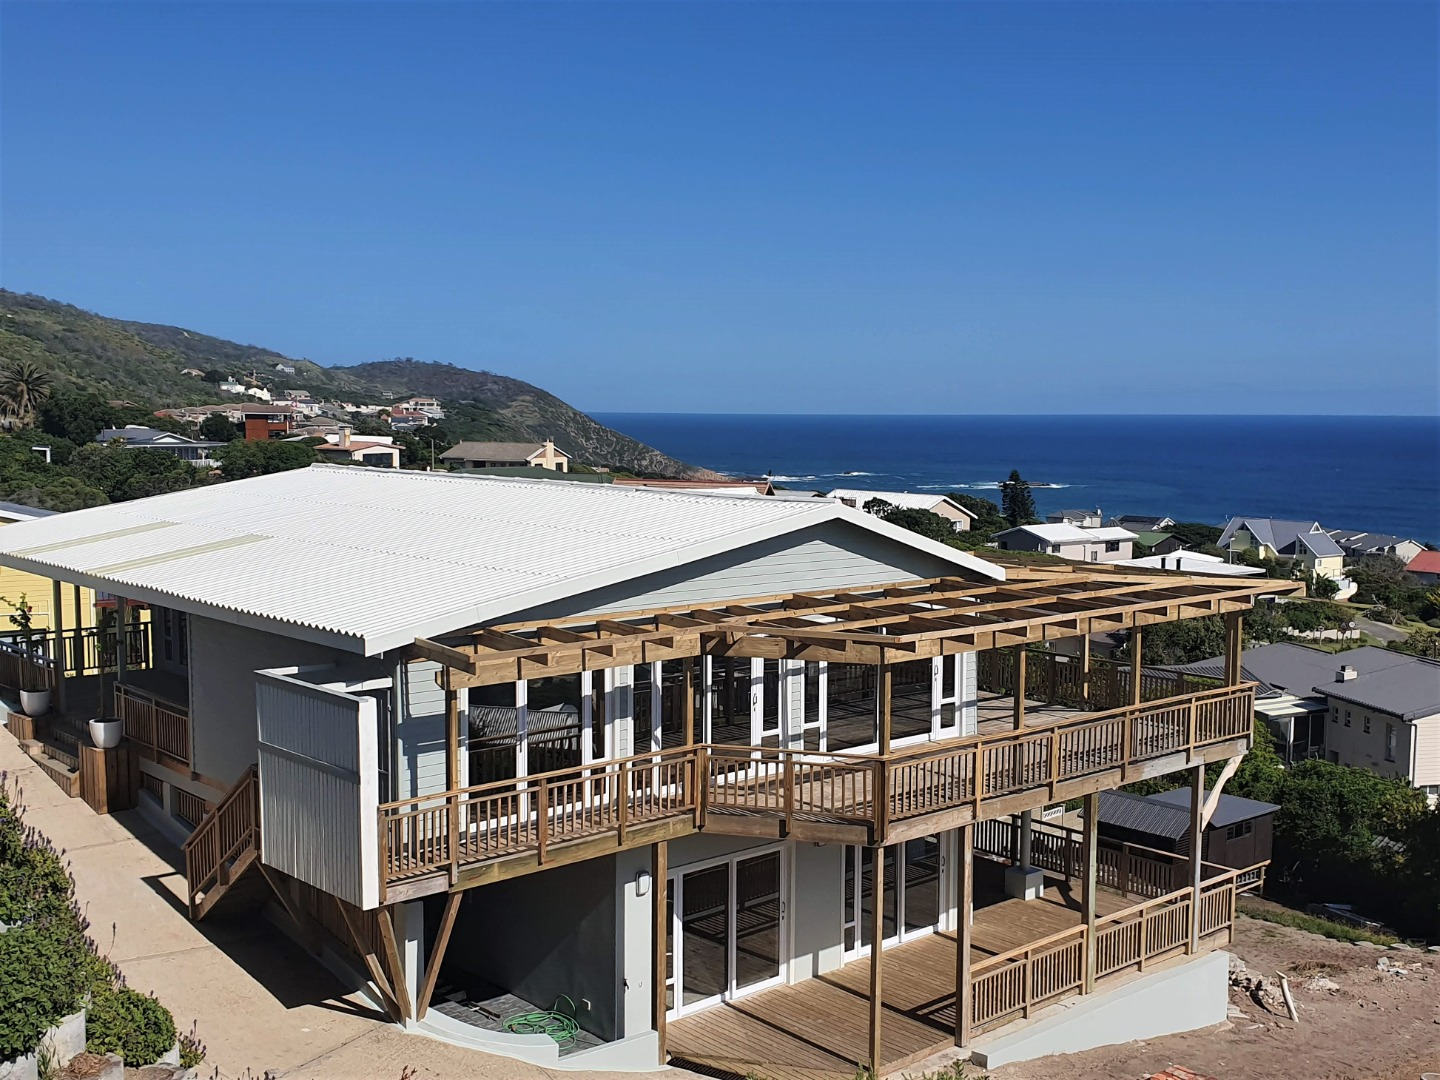 5 Bedroom House For Sale in Brenton On Sea